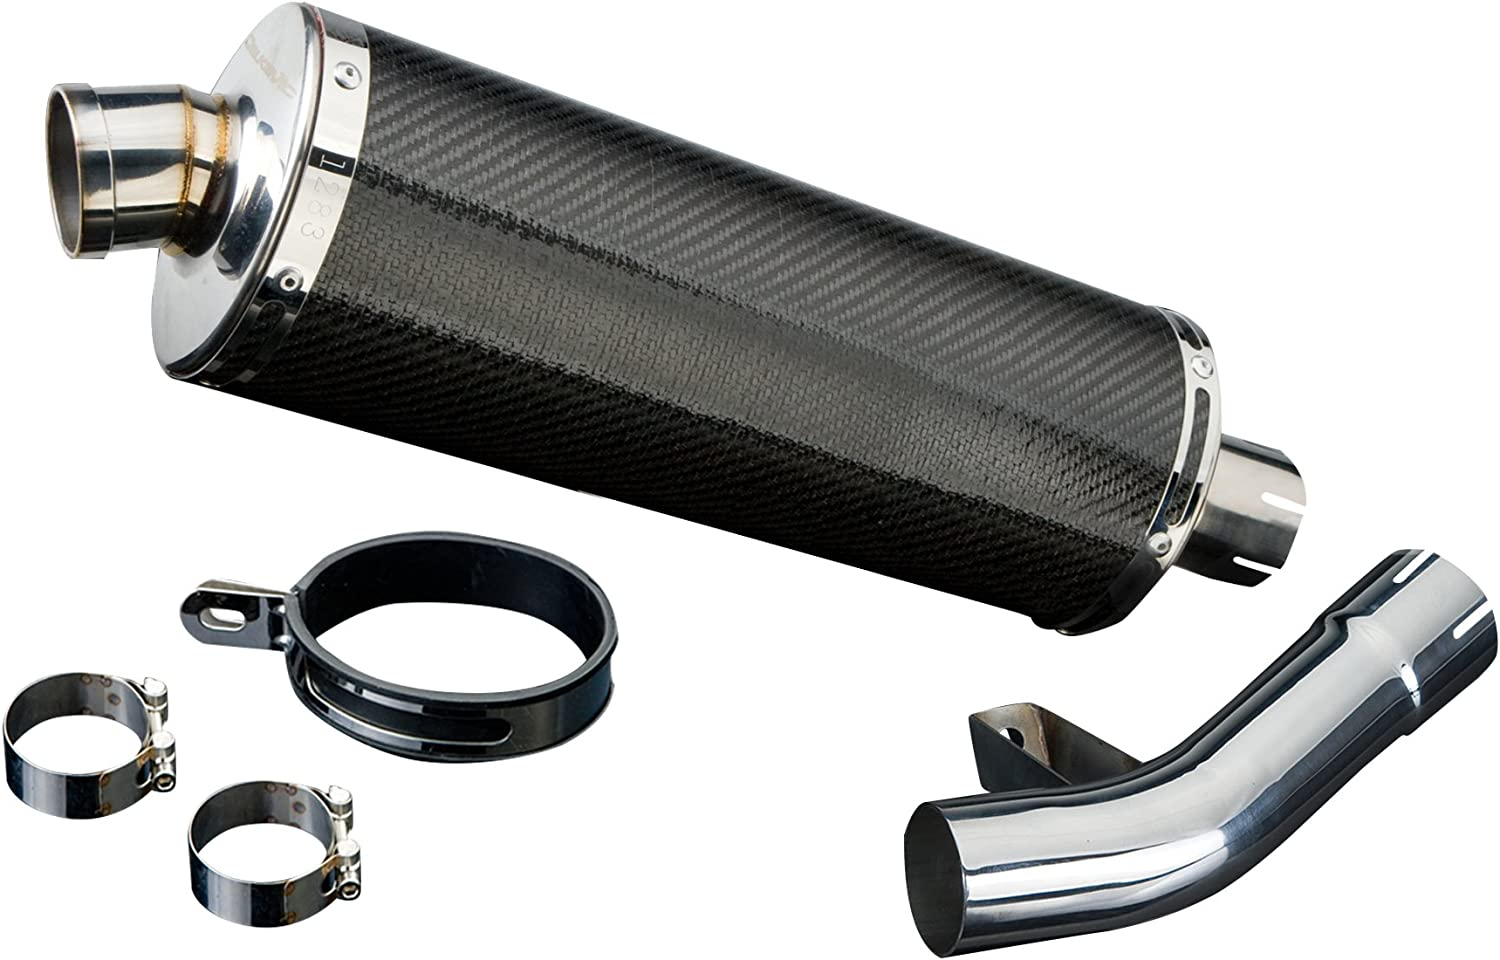 Delkevic Aftermarket Slip On compatible with Suzuki GSF1250 Bandit Stubby 14 Carbon Fiber Oval Muffler Exhaust 07-09 /& 16